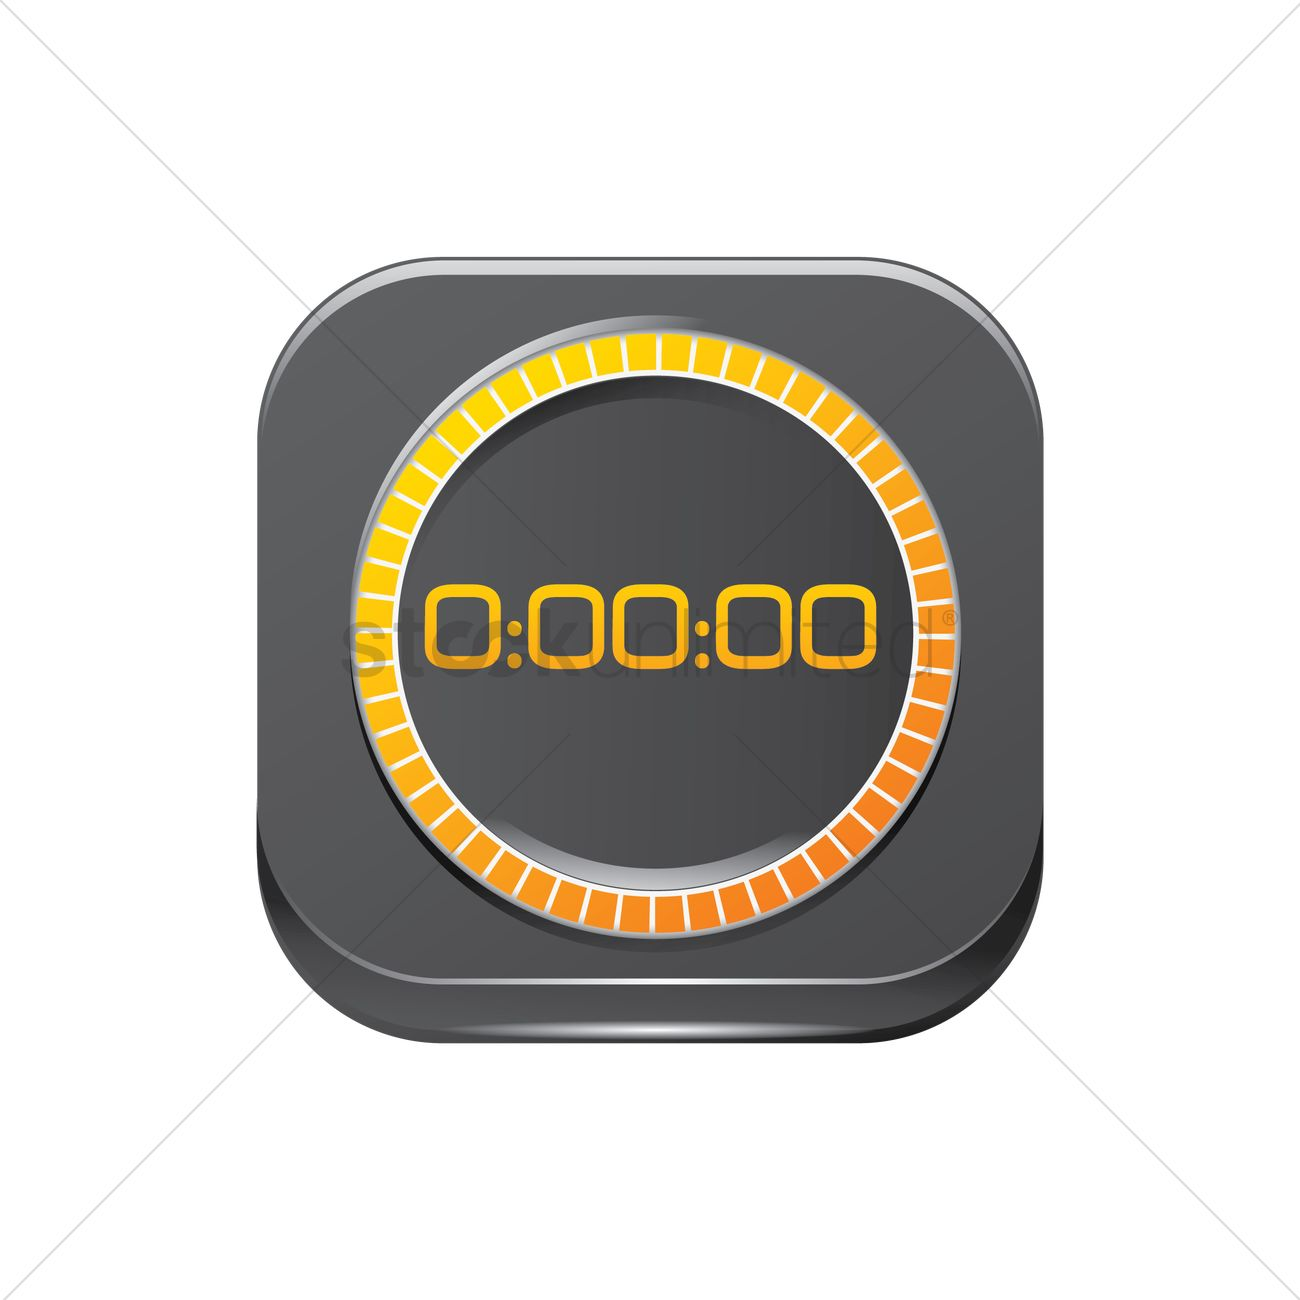 Digital timer icon Vector Image - 1617200 | StockUnlimited